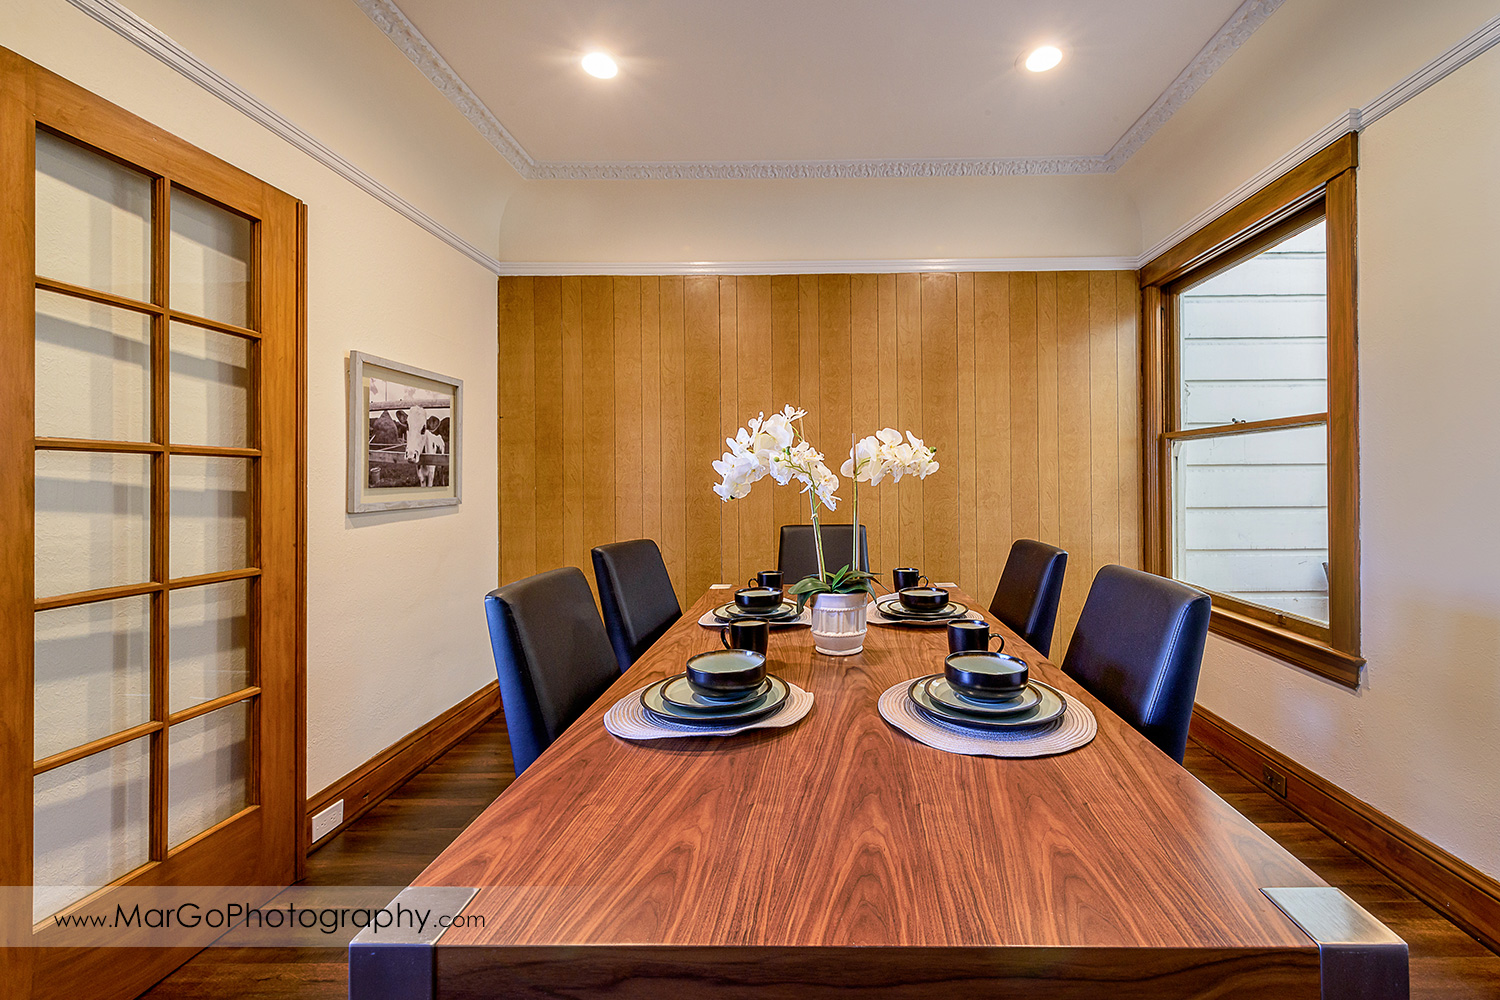 San Francisco house dining room with wood wall - real estate photography